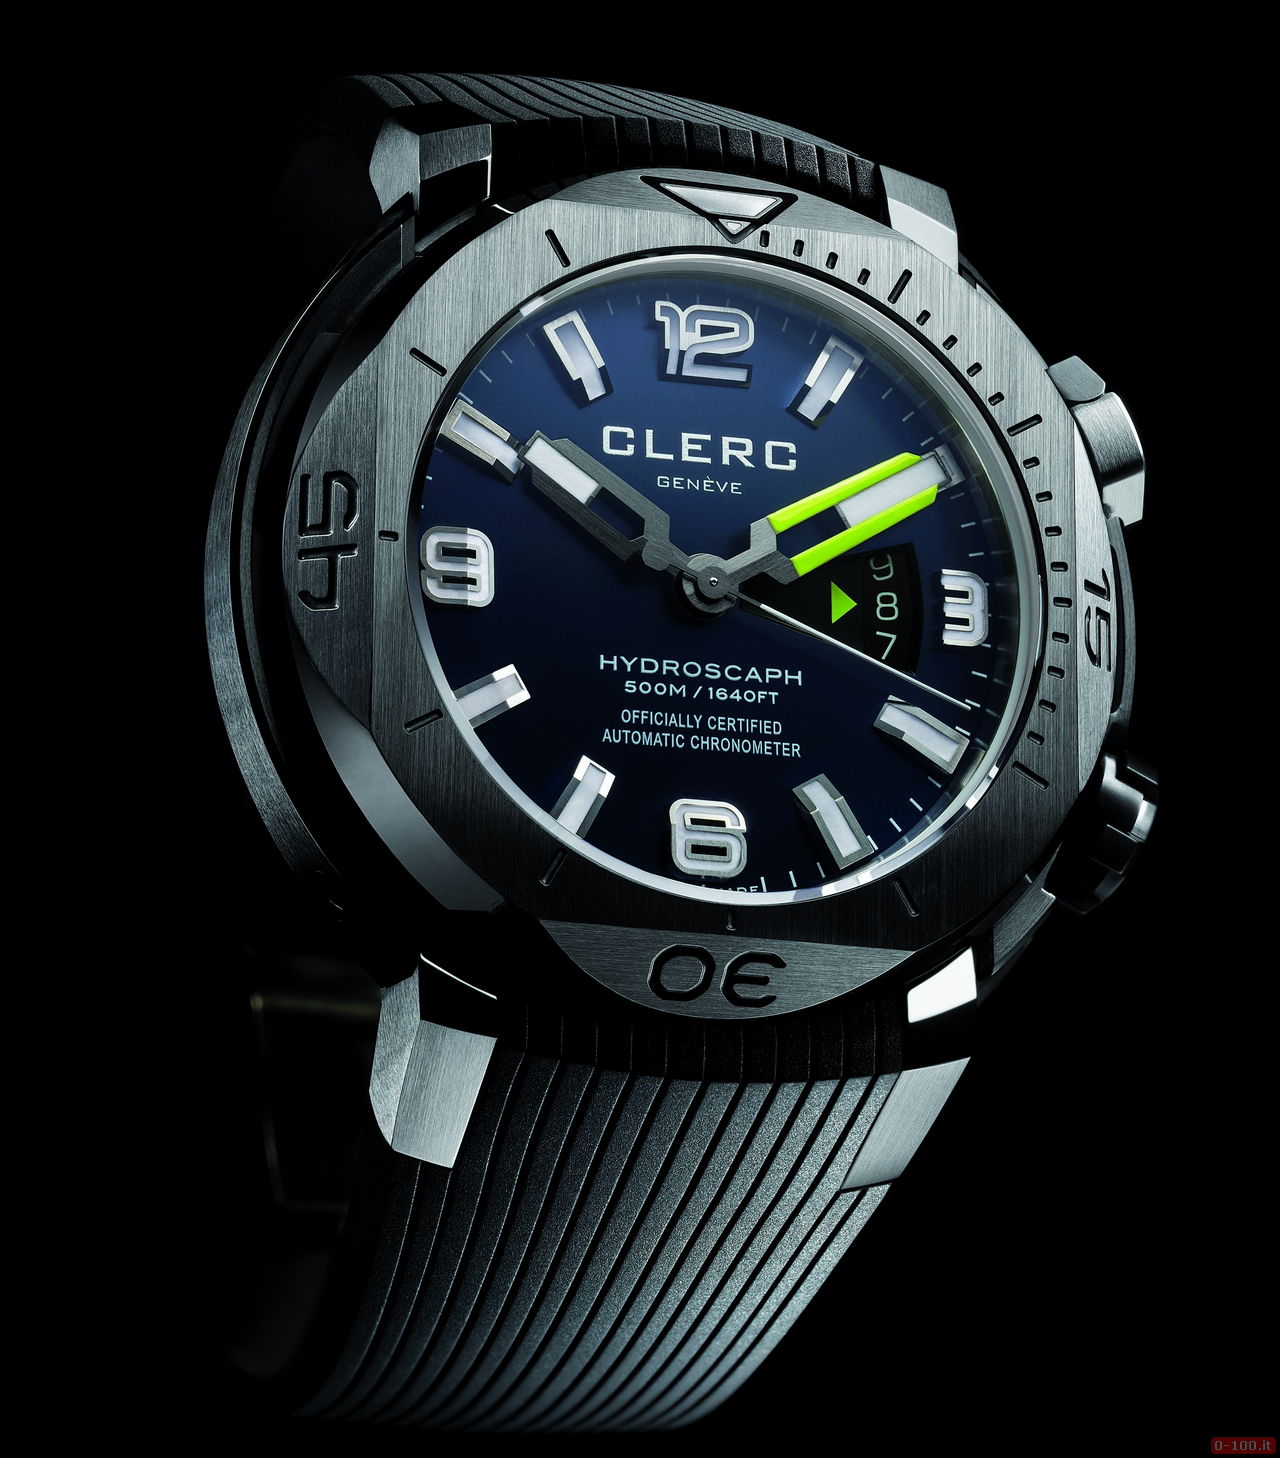 anteprima-baselword-2013-clerc-hydroscaph-h1-chronometer_0-100_2